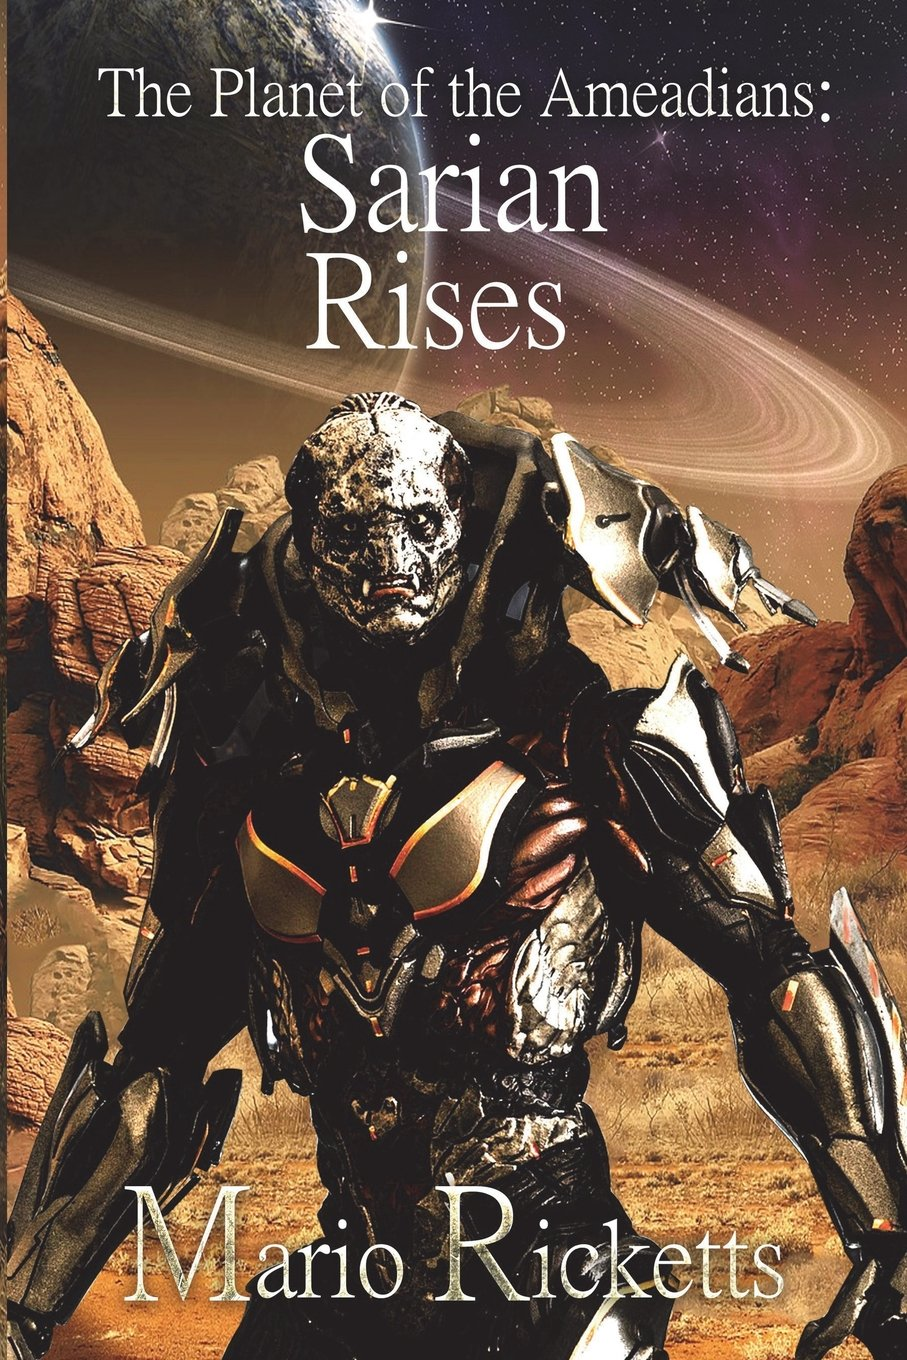 Read Online The planet of the ameadians: Sarian rises (volume) pdf